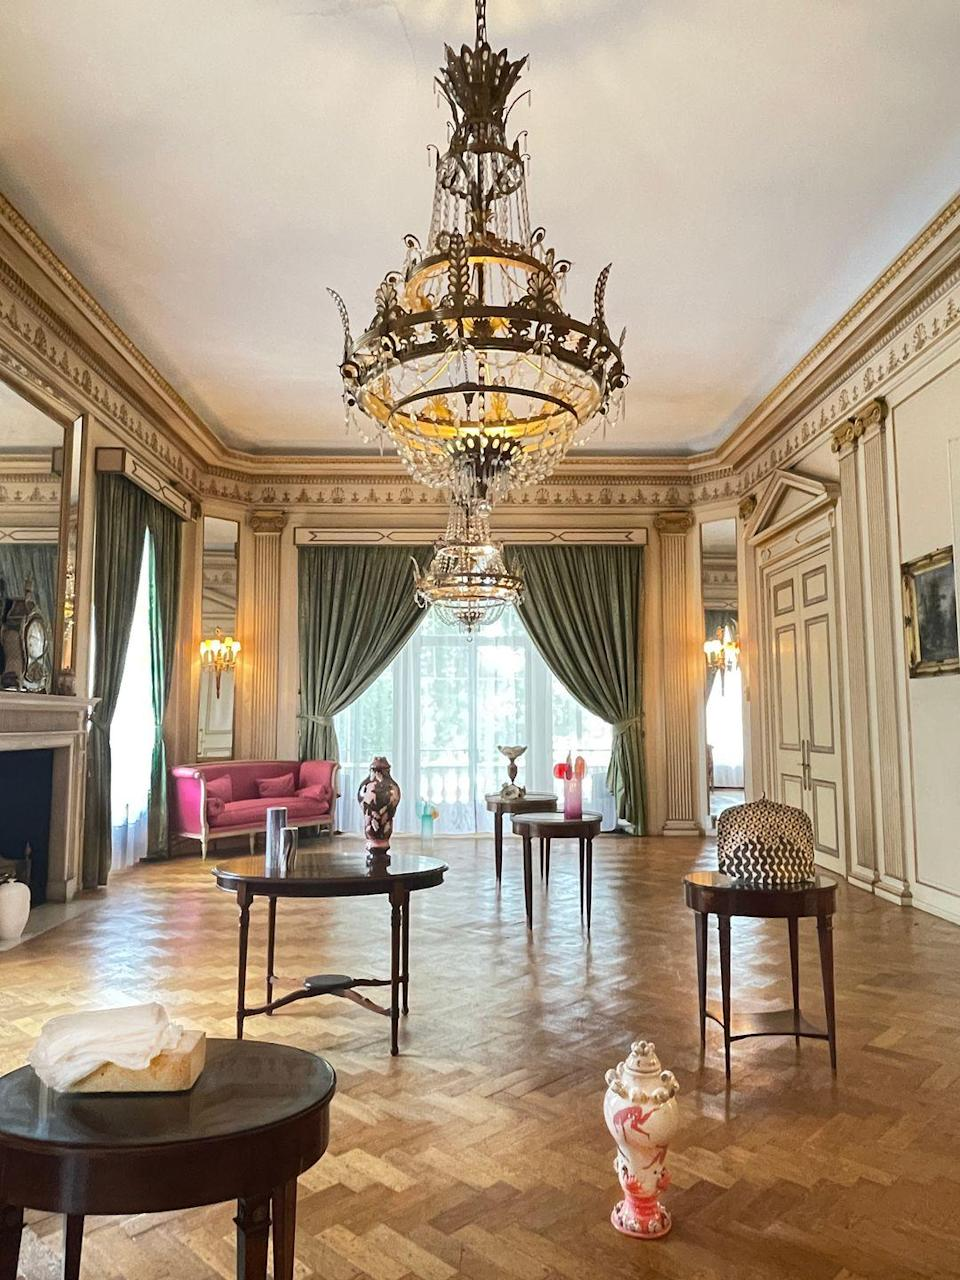 """<p>The Argentine Ambassador's Residence in Belgravia will provide an illustrious backdrop for this collaborative exhibition, which is staged by five of the capital's top galleries. Over 200 works, including site-specific installations by Denise de Cordova and Charlotte Hodes, will jostle with its grand chandeliers and tapestries. There's also an opportunity to meet one of the artists each afternoon. 49 Belgrave Square, 4-10 October, <a href=""""https://www.craftingadifference.com"""" rel=""""nofollow noopener"""" target=""""_blank"""" data-ylk=""""slk:craftingadifference.com"""" class=""""link rapid-noclick-resp"""">craftingadifference.com</a></p>"""